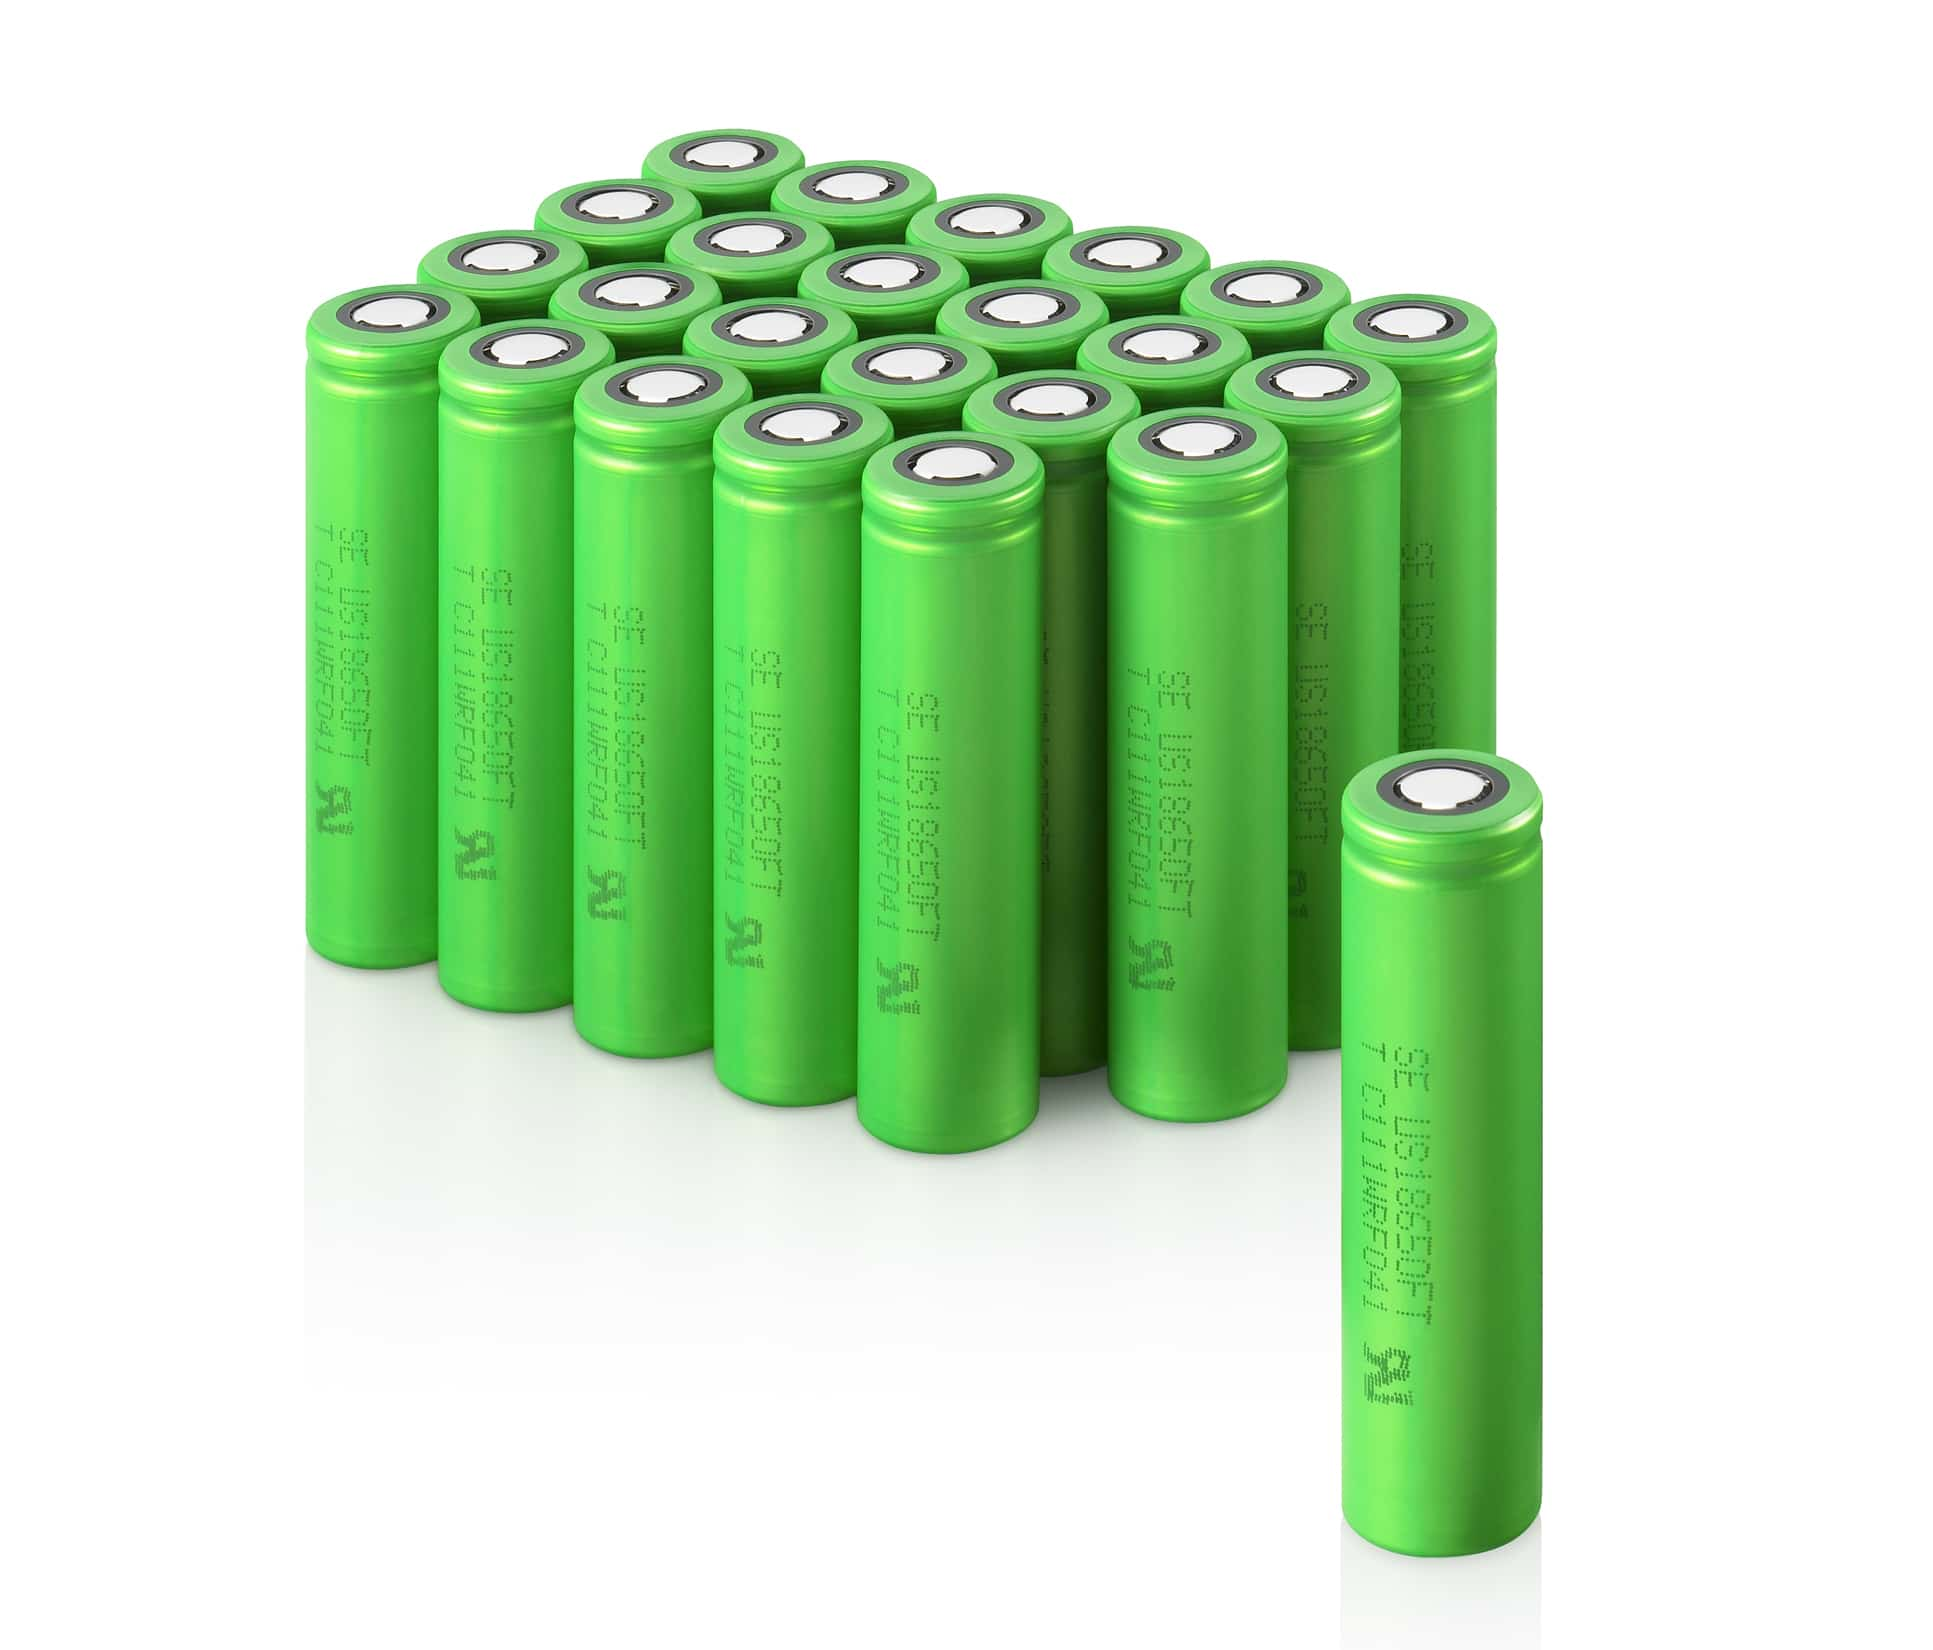 Lithium Ion Battery : The latest environment friendly lithium ion batteries and